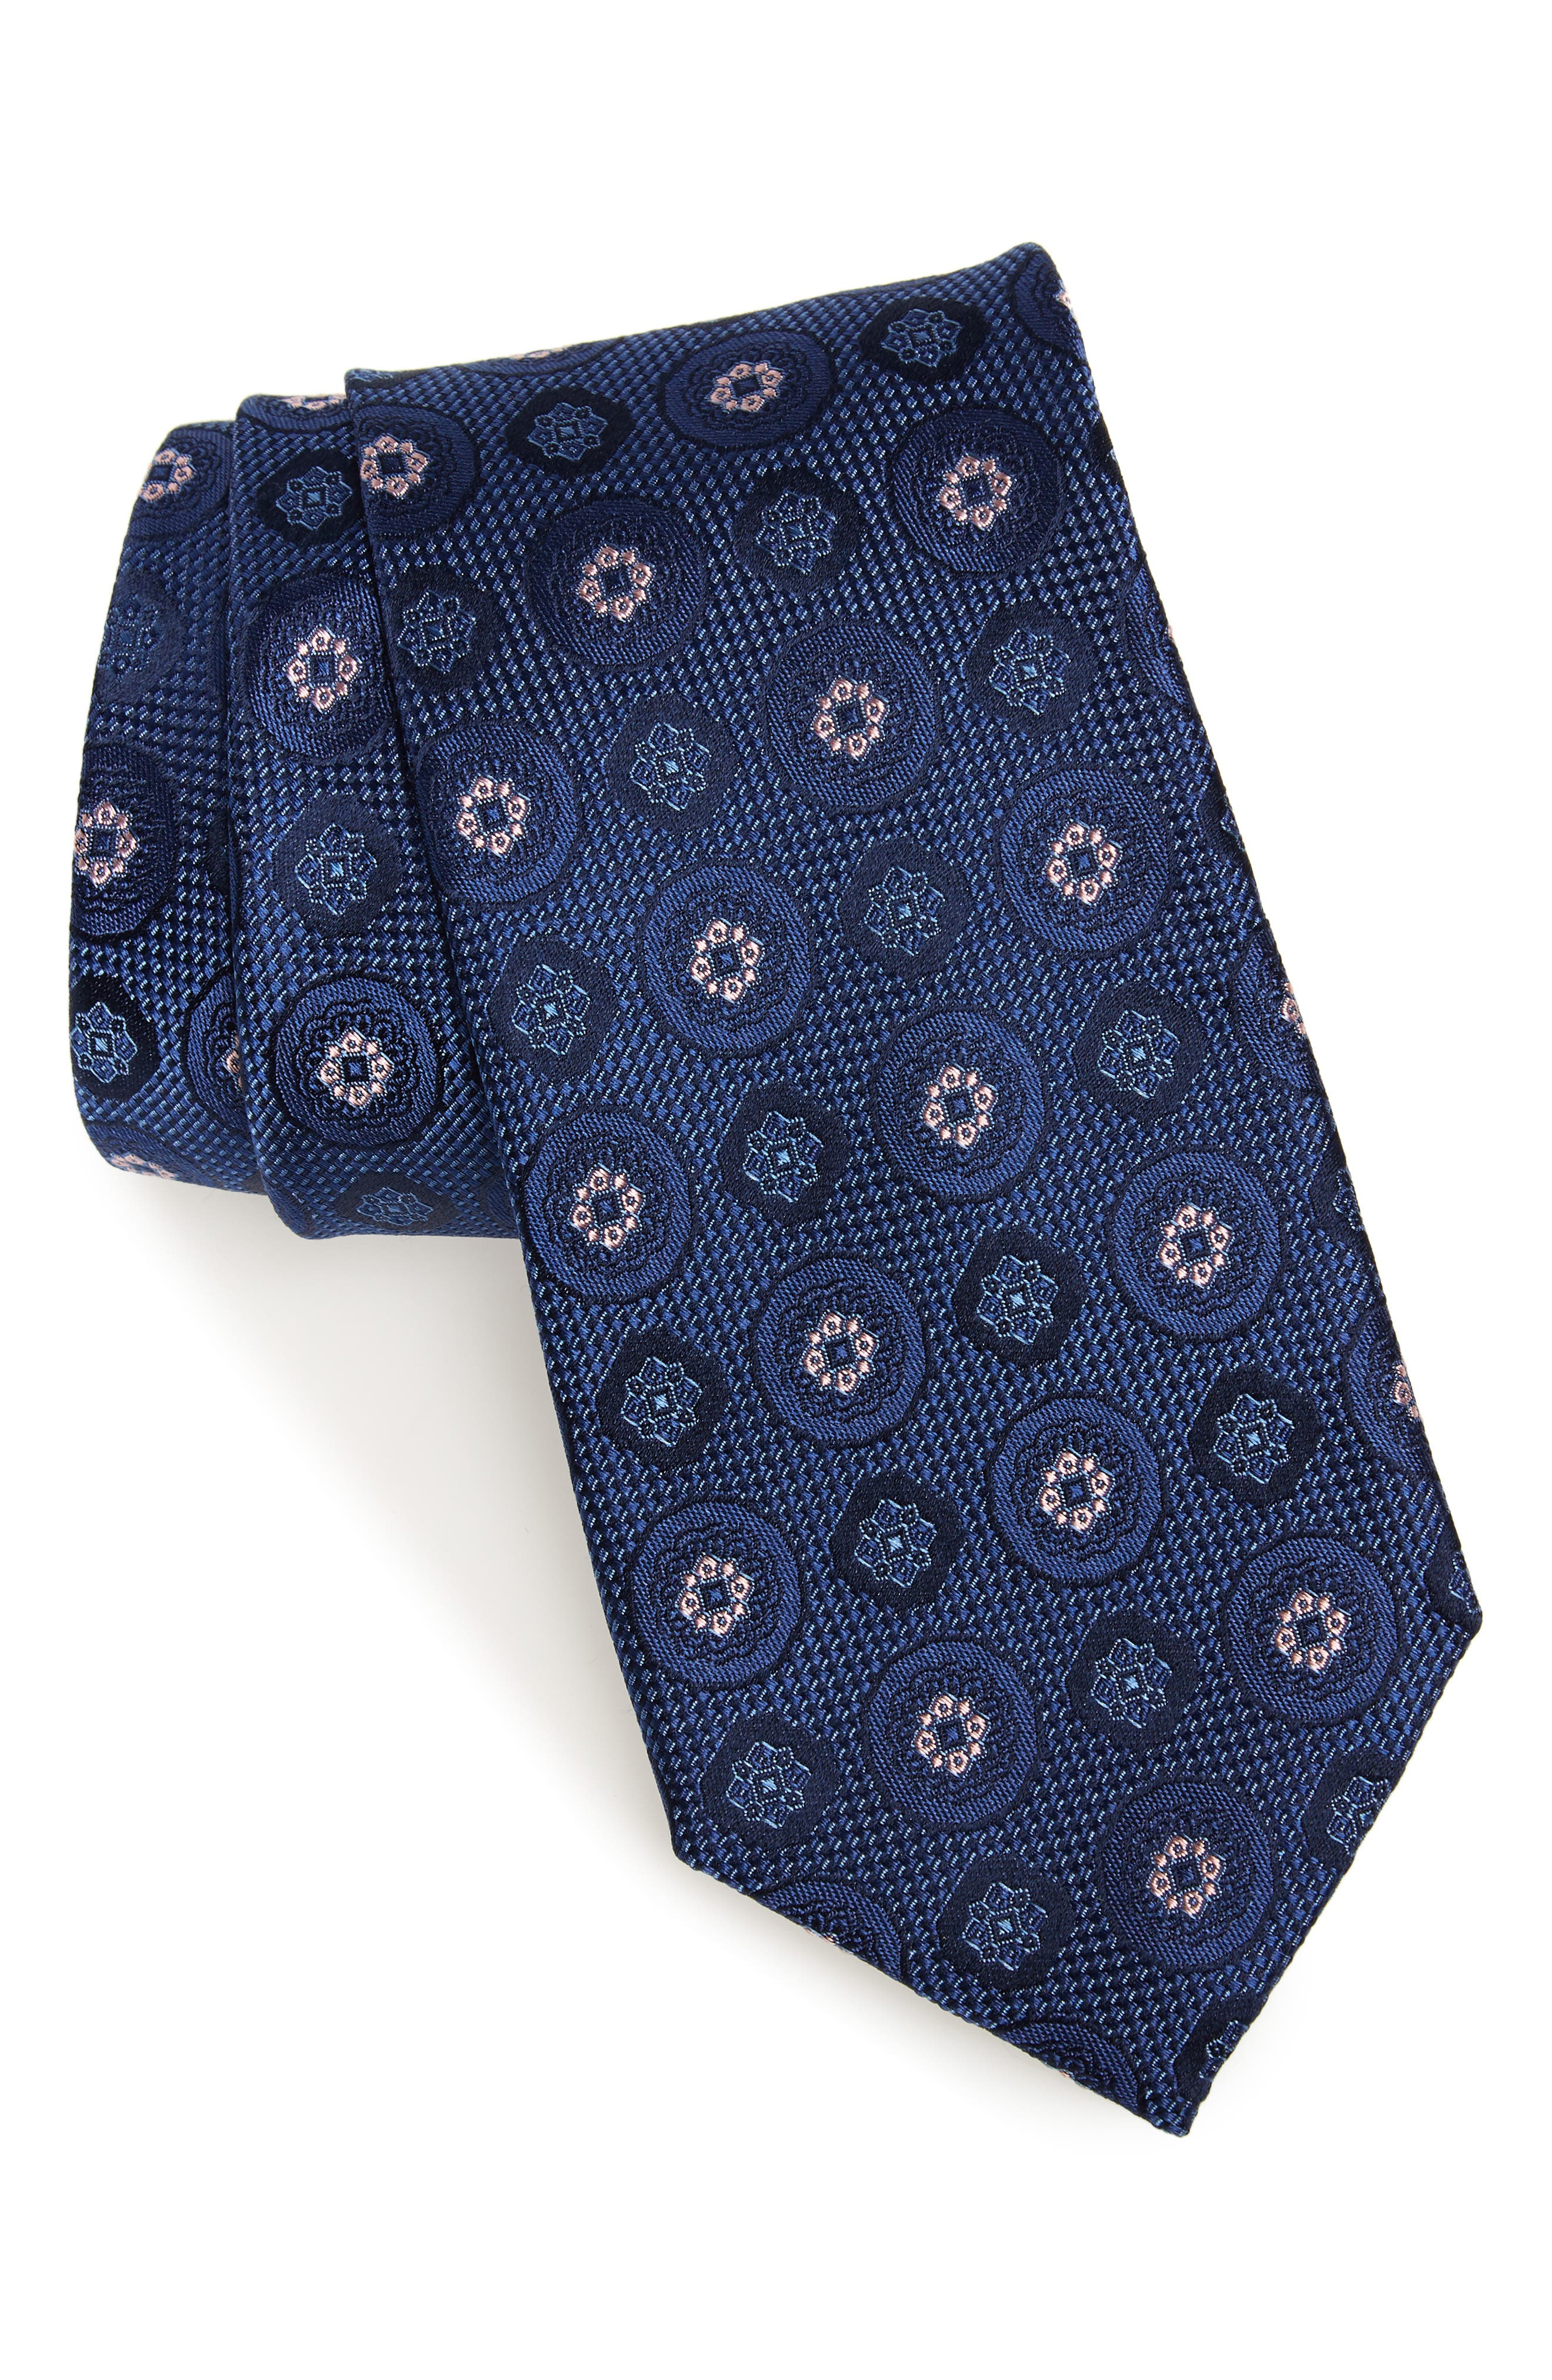 Edlin Medallion Silk Tie,                         Main,                         color, NAVY